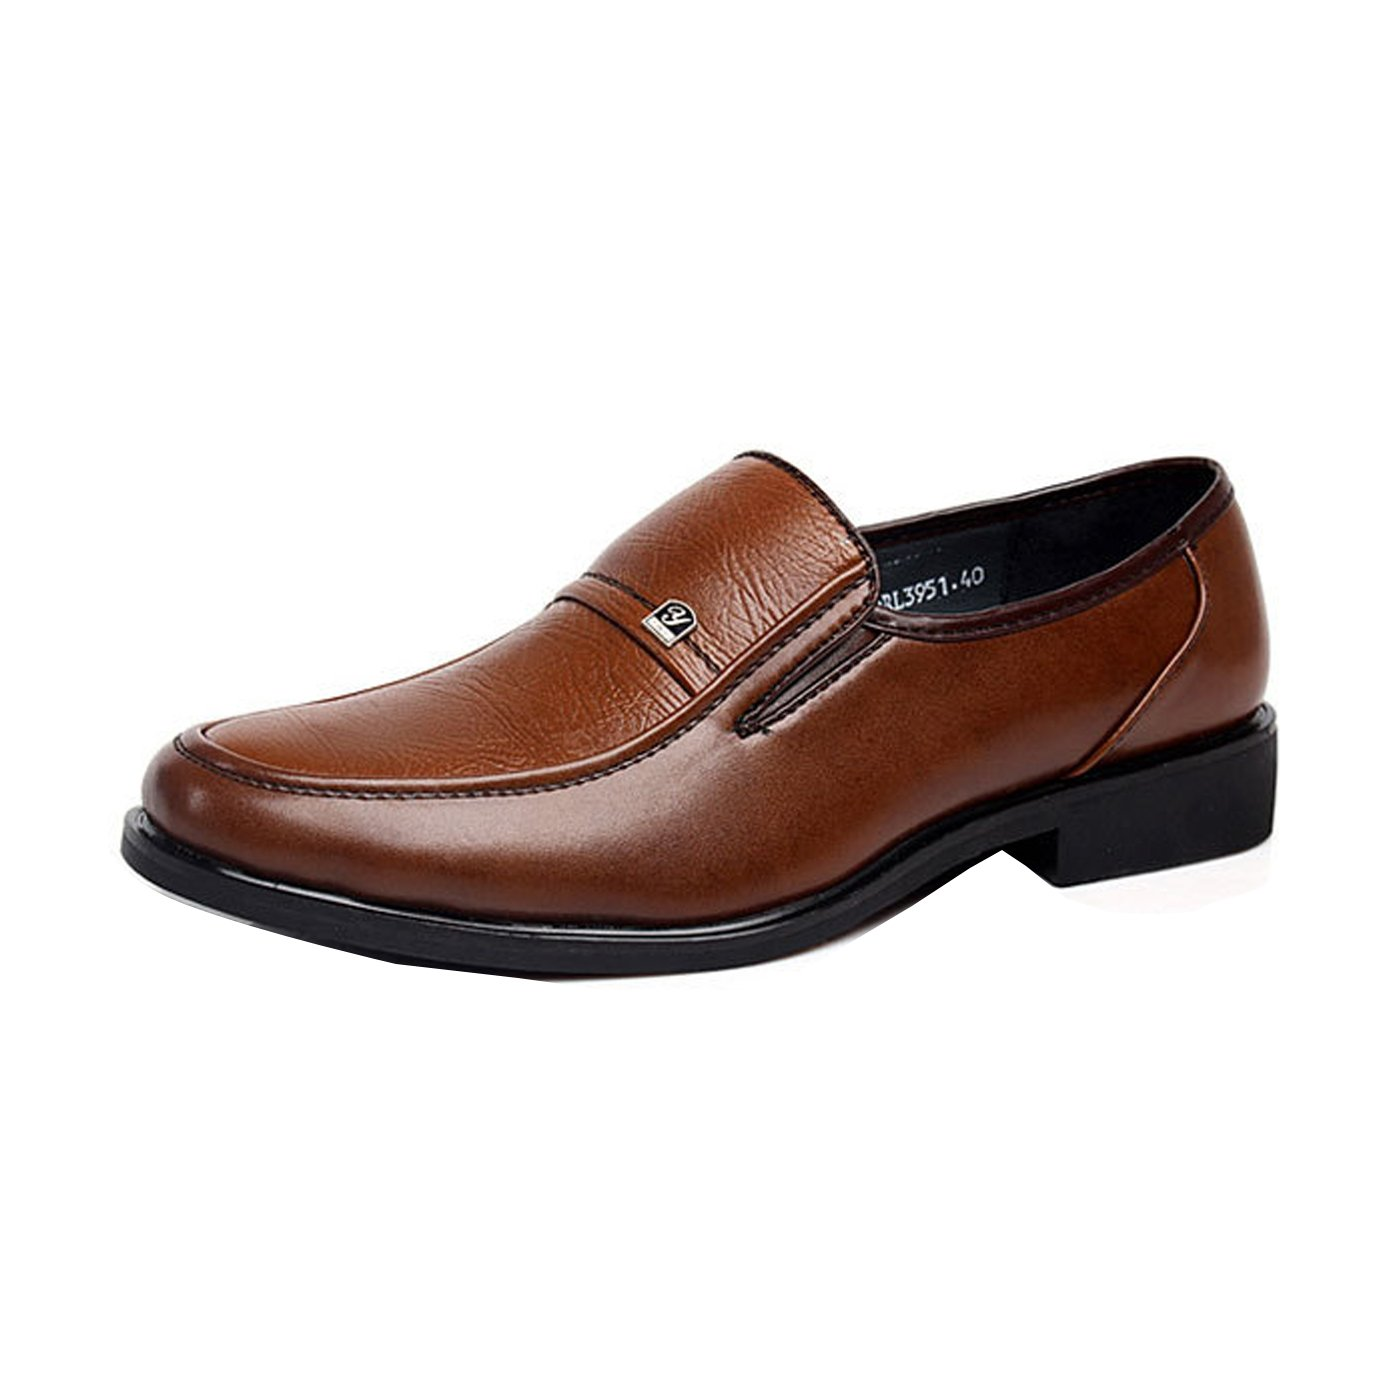 Gaorui Men's Work Formal Business Dress Shoes Flat Oxfords Loafers Slip On Leather Shoes Brown